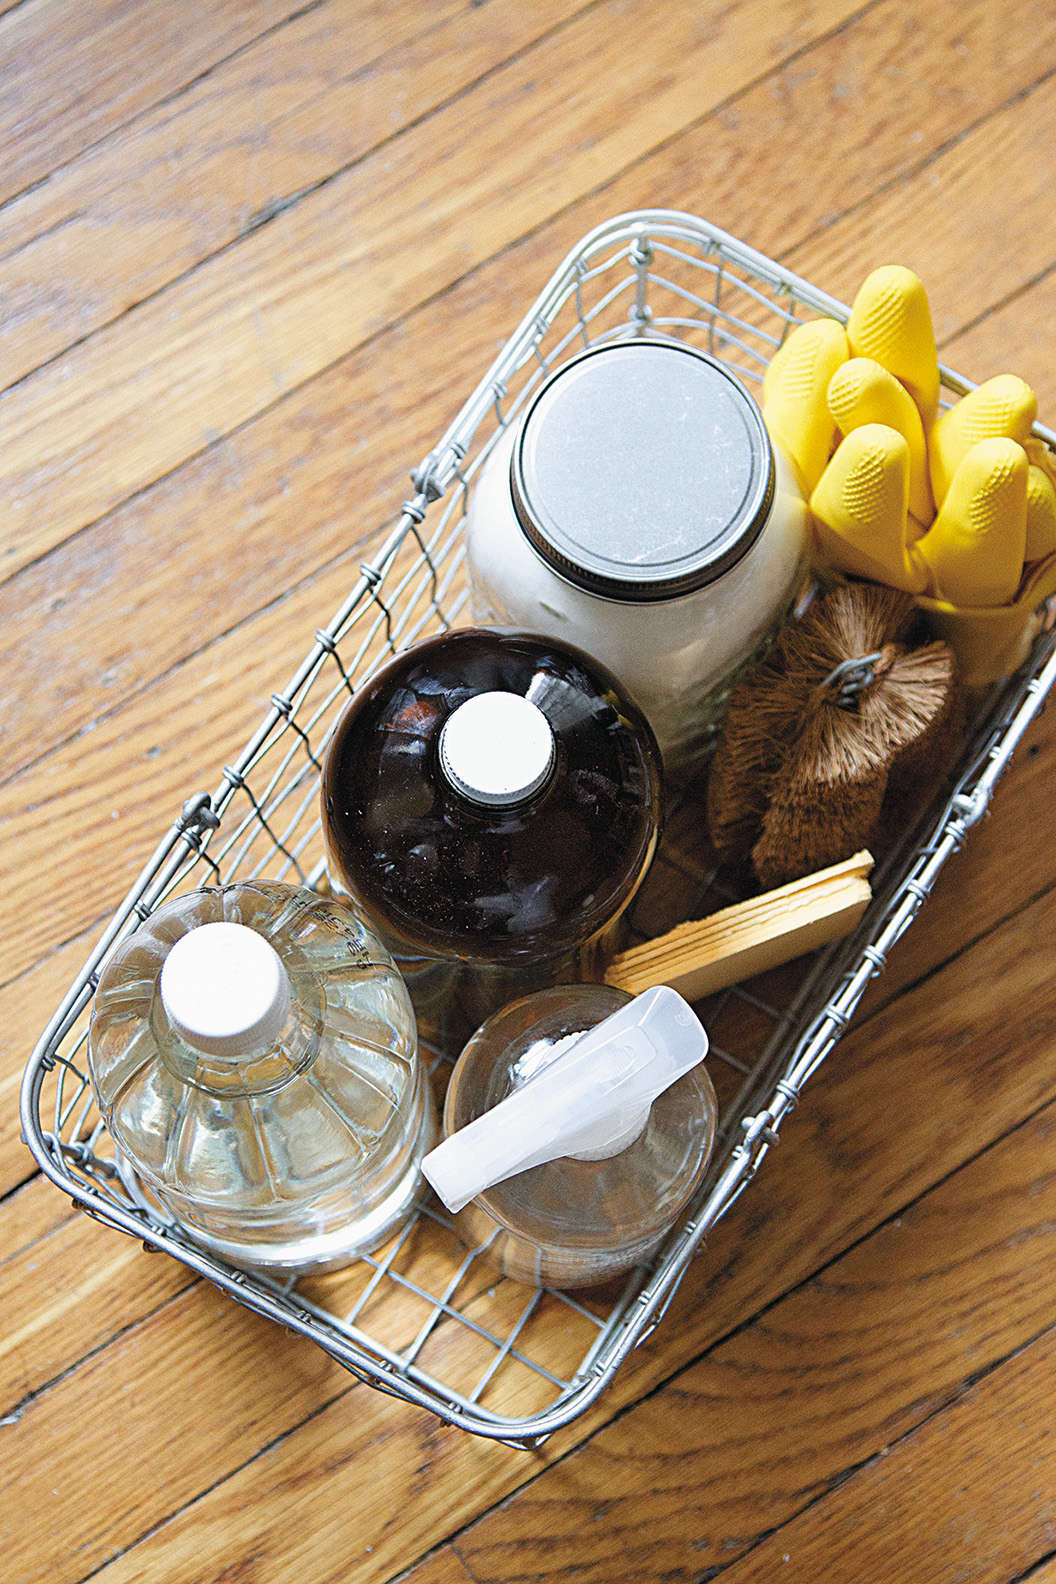 simple diy cleaning supplies made from vinegar and baking soda by erin boyle fr 9